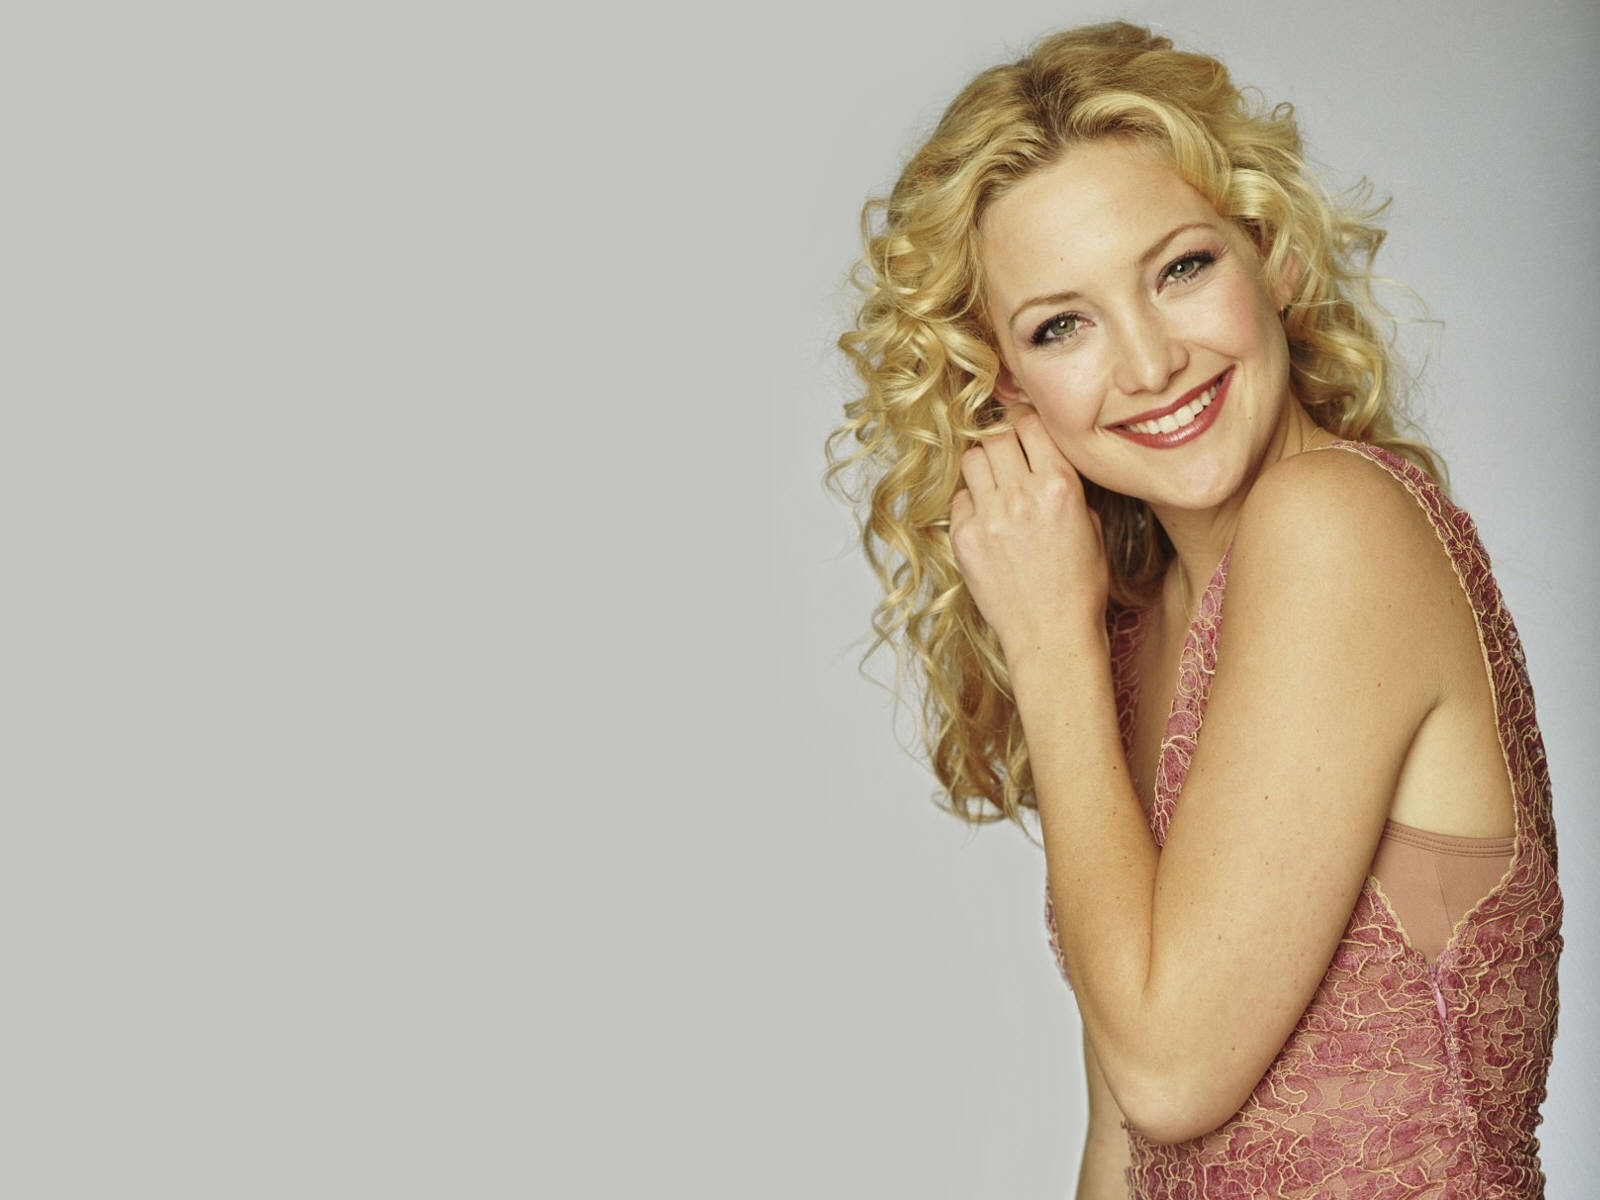 cleavage Is a cute Kate Hudson naked photo 2017